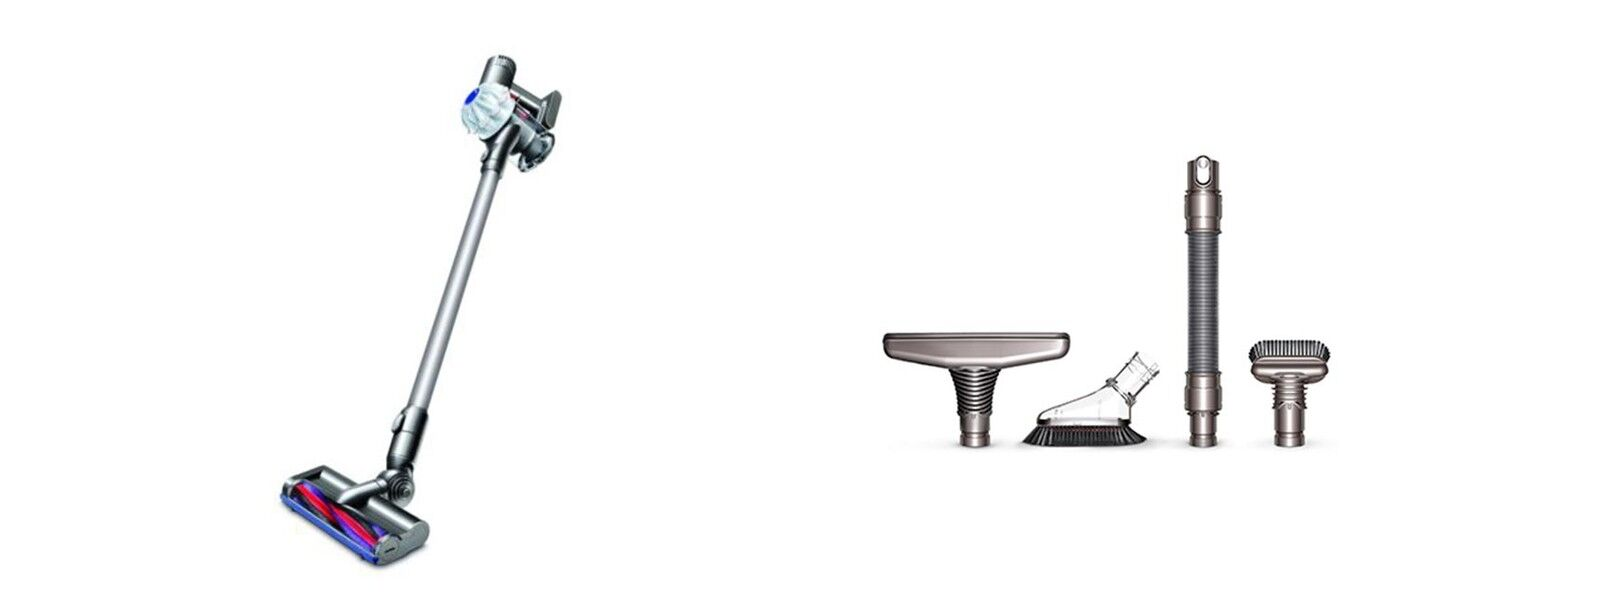 More info - Dyson V6B with free 4-pc accessory kit (value of $102)